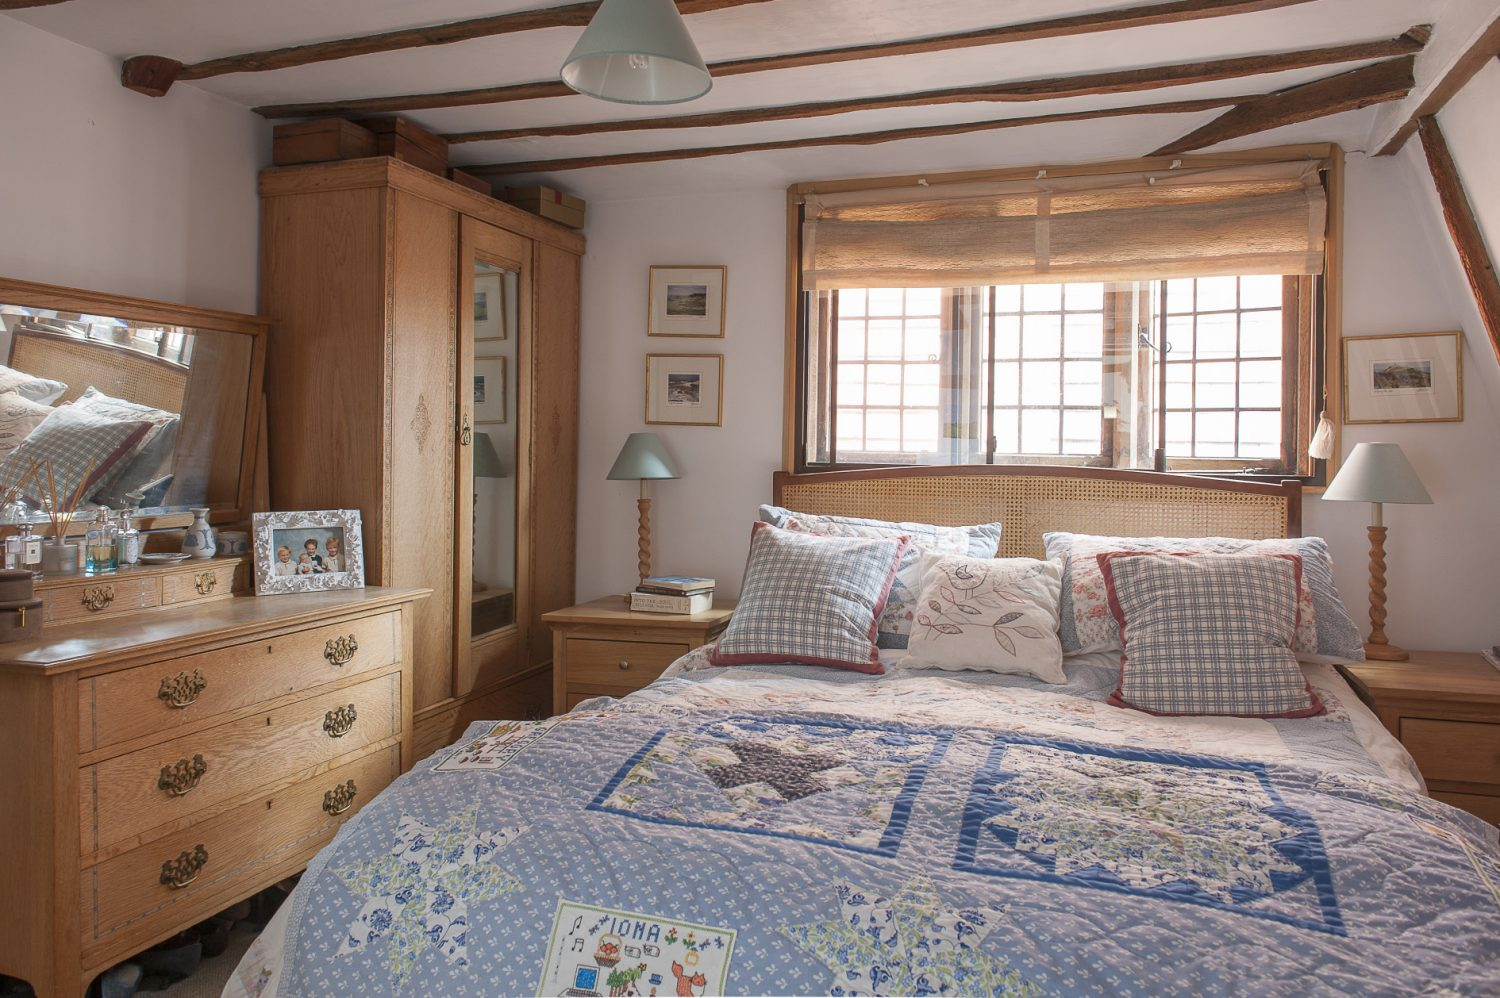 The master bedroom with its heirloom quilt made by Suzanne for her mother's 70th birthday